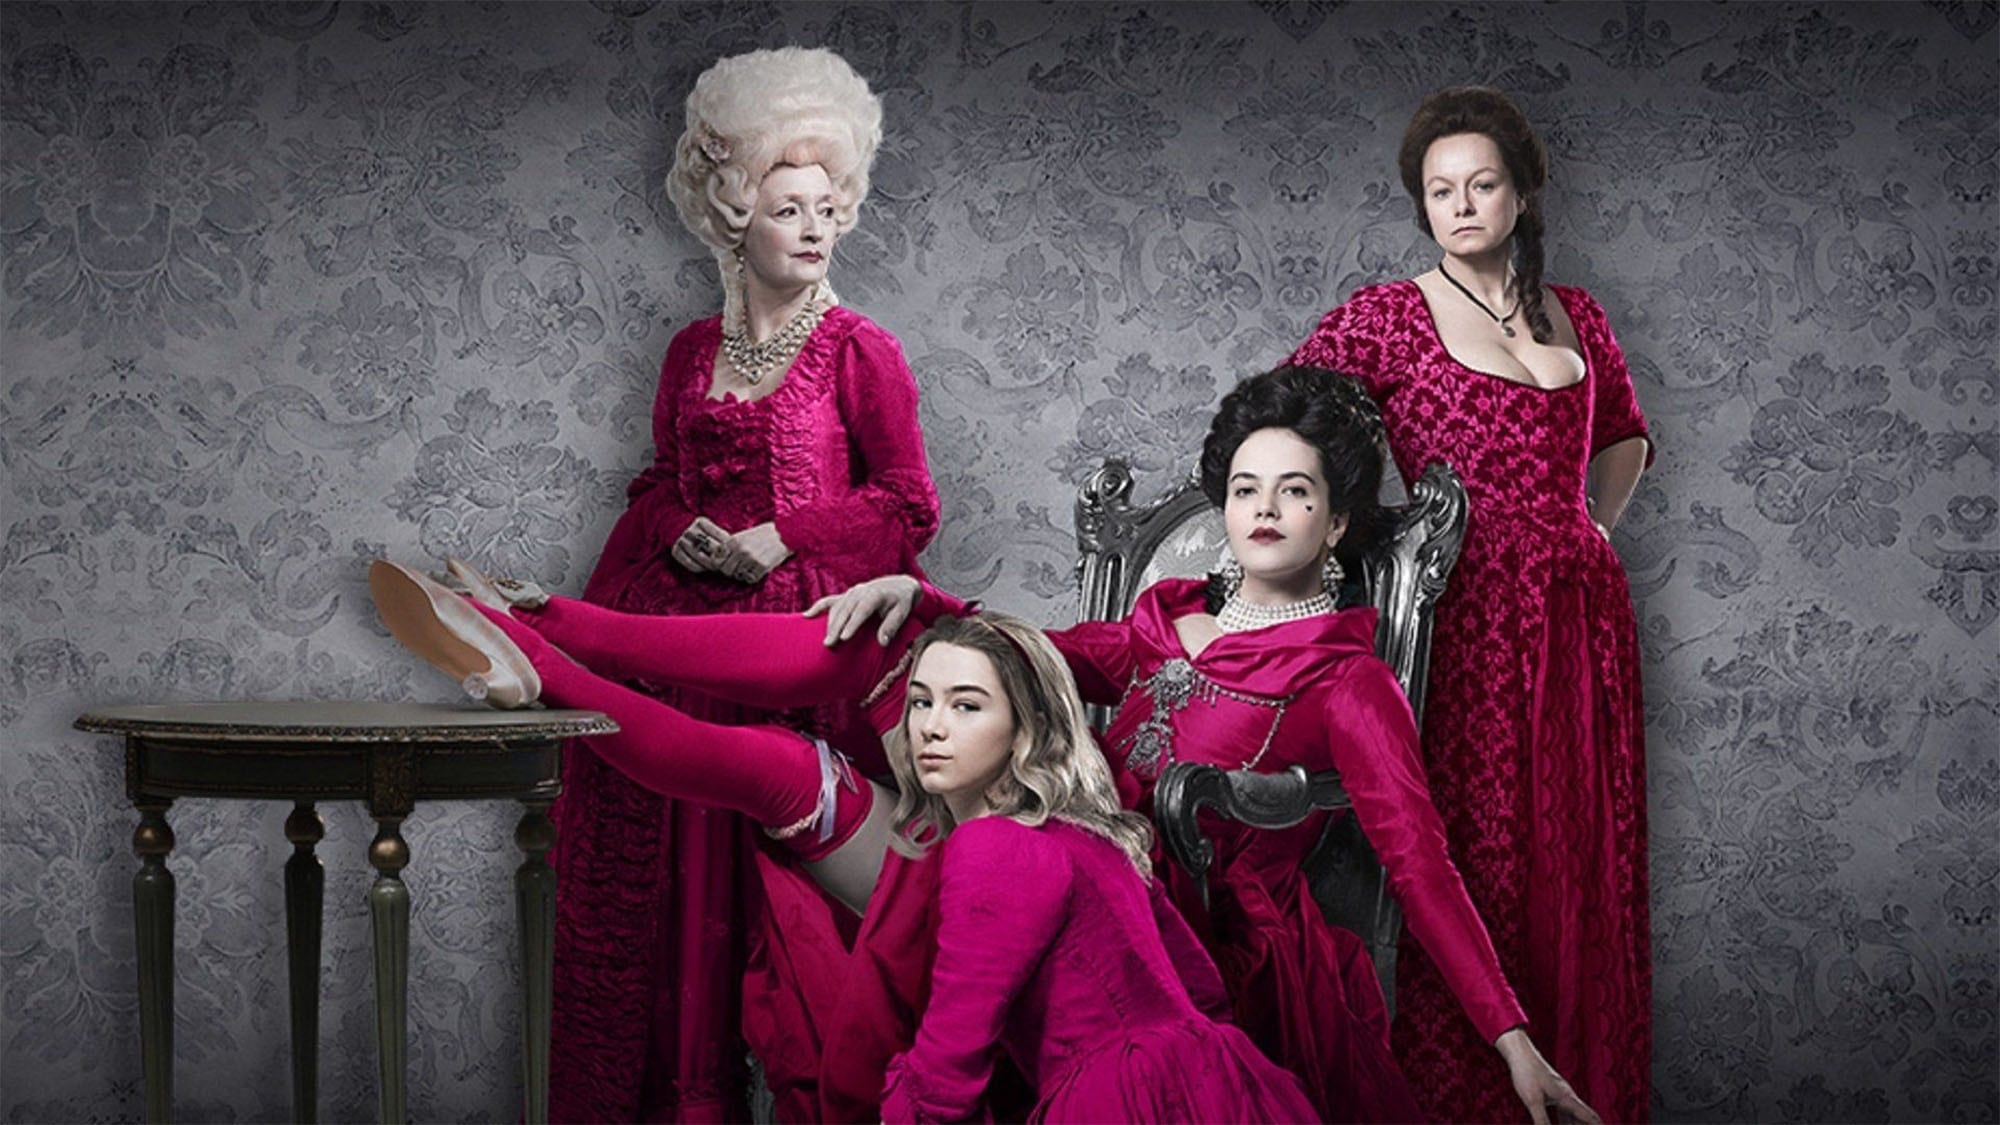 When madam Margaret's daughter Charlotte goes to arch-rival bawd Lydia Quigley, their deep-set rivalry is taken to a dangerous new level in 'Harlots'.